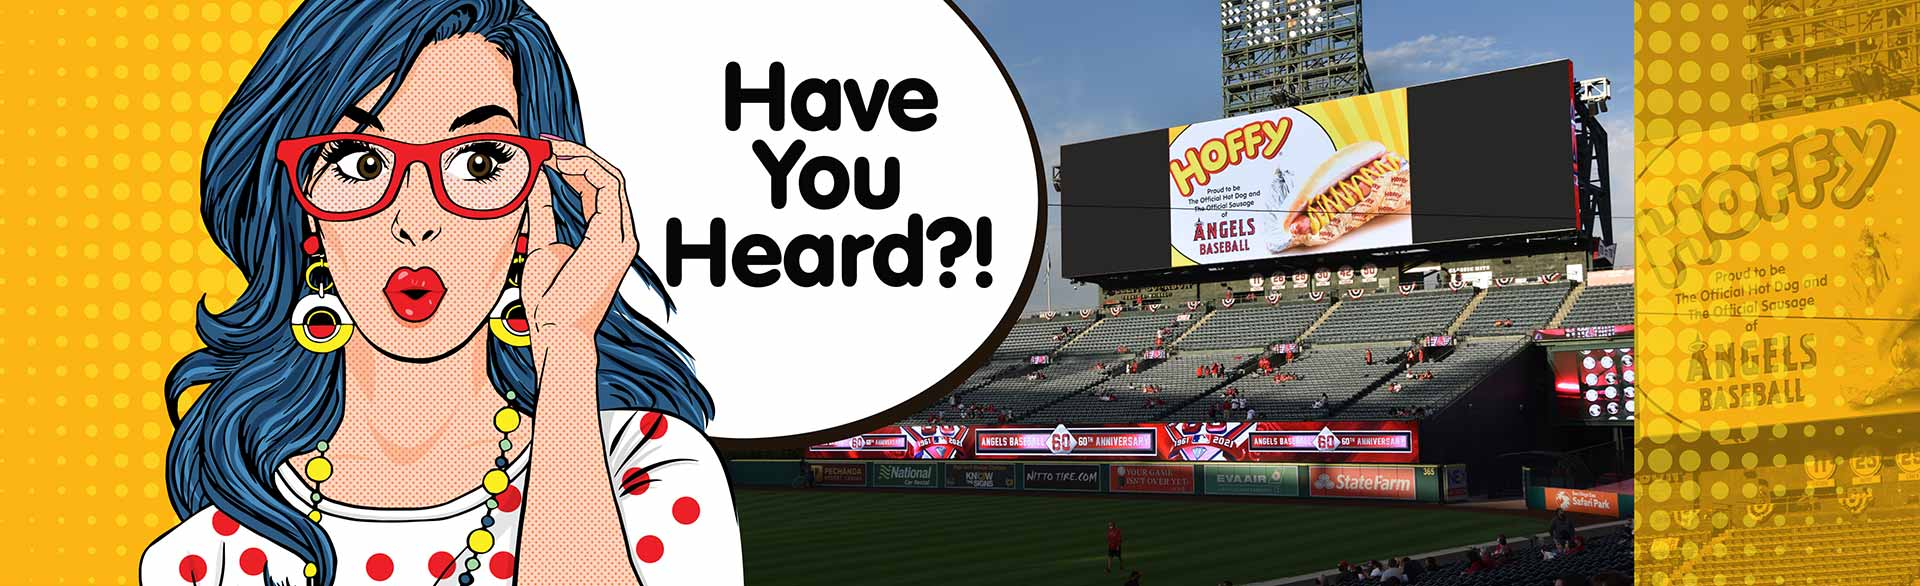 Have You Heard? Hoffy at Angels Stadium